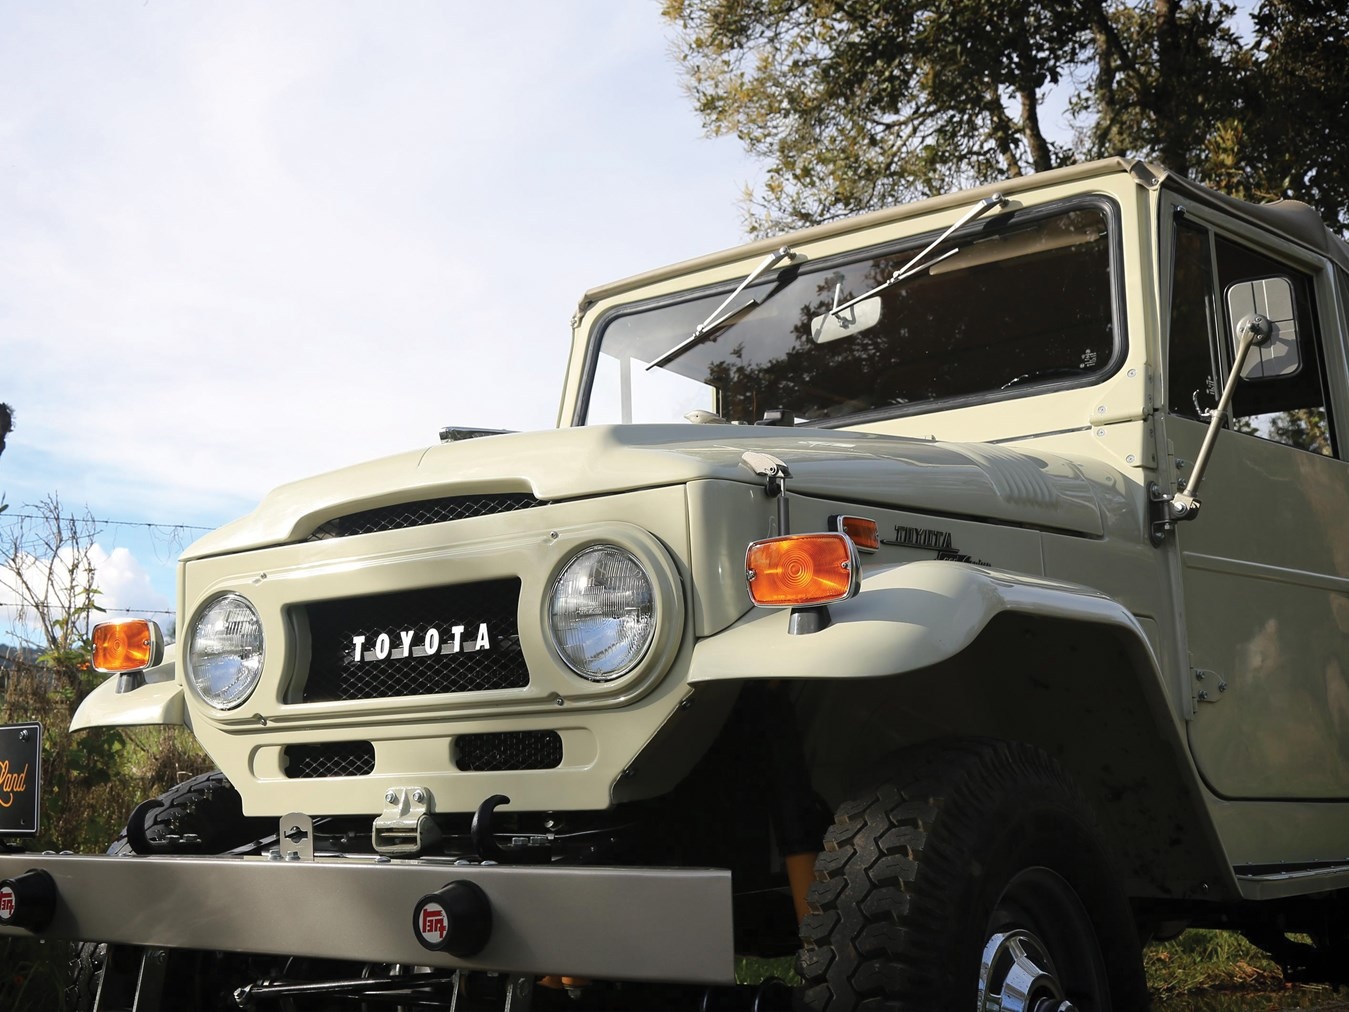 1970 Toyota FJ43 Land Cruiser Soft-Top